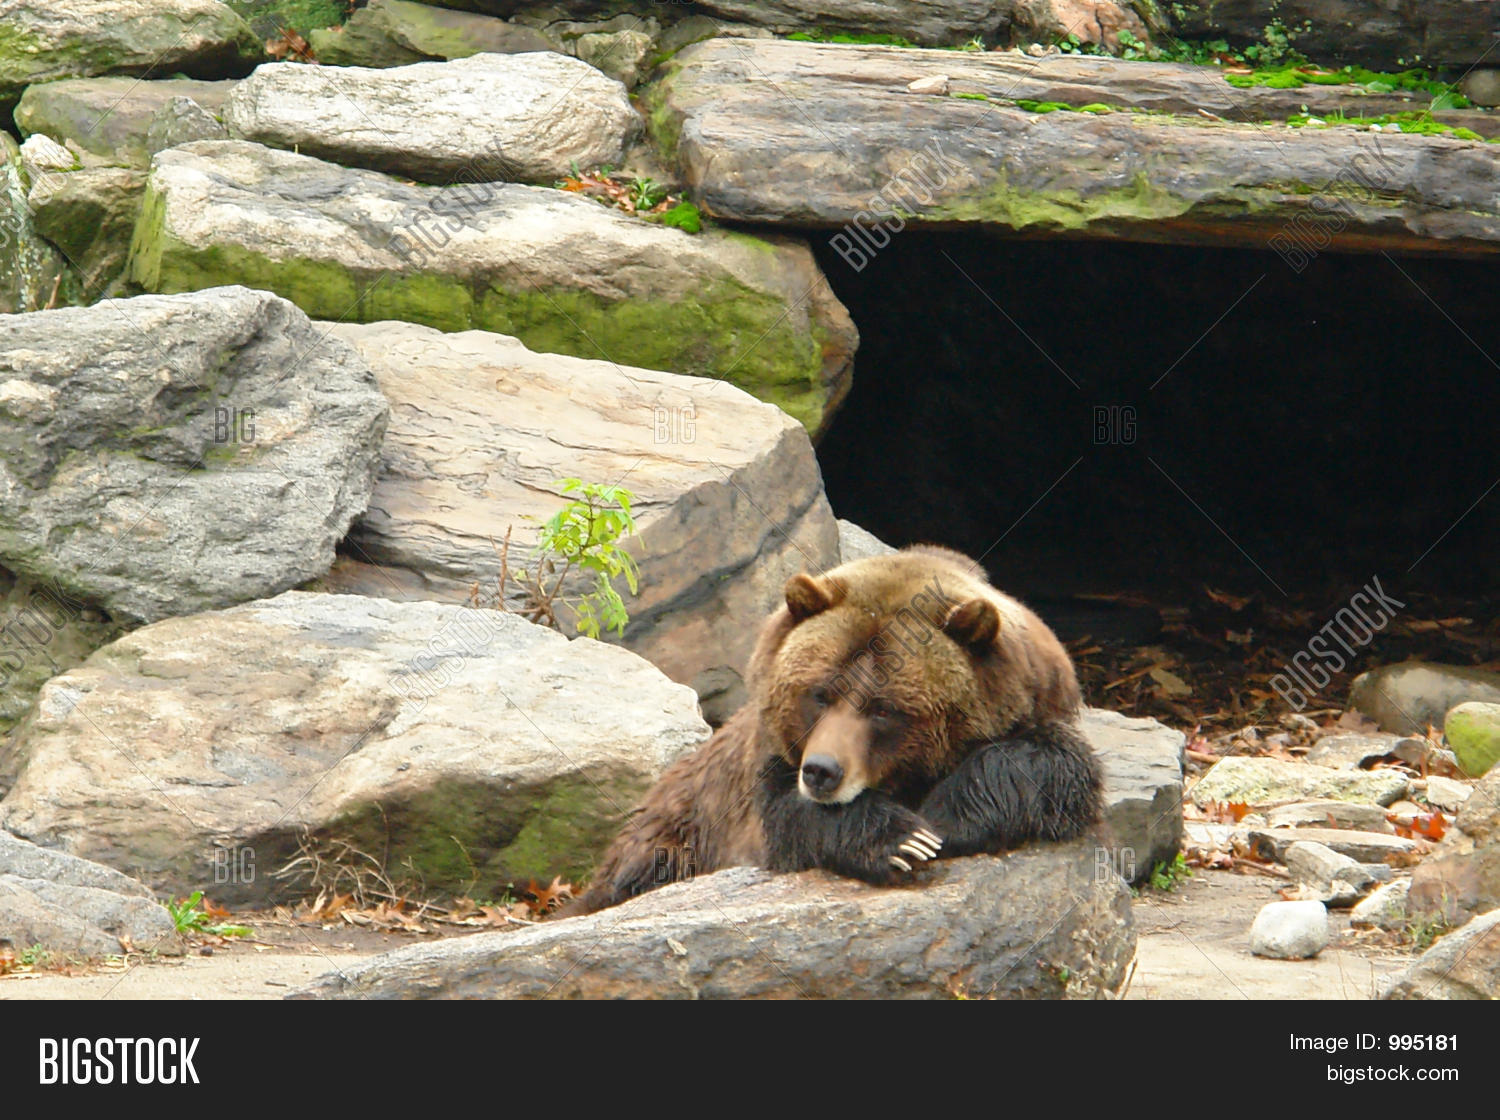 Bear Sleeping Outside Cave Stock Photo & Stock Images ...